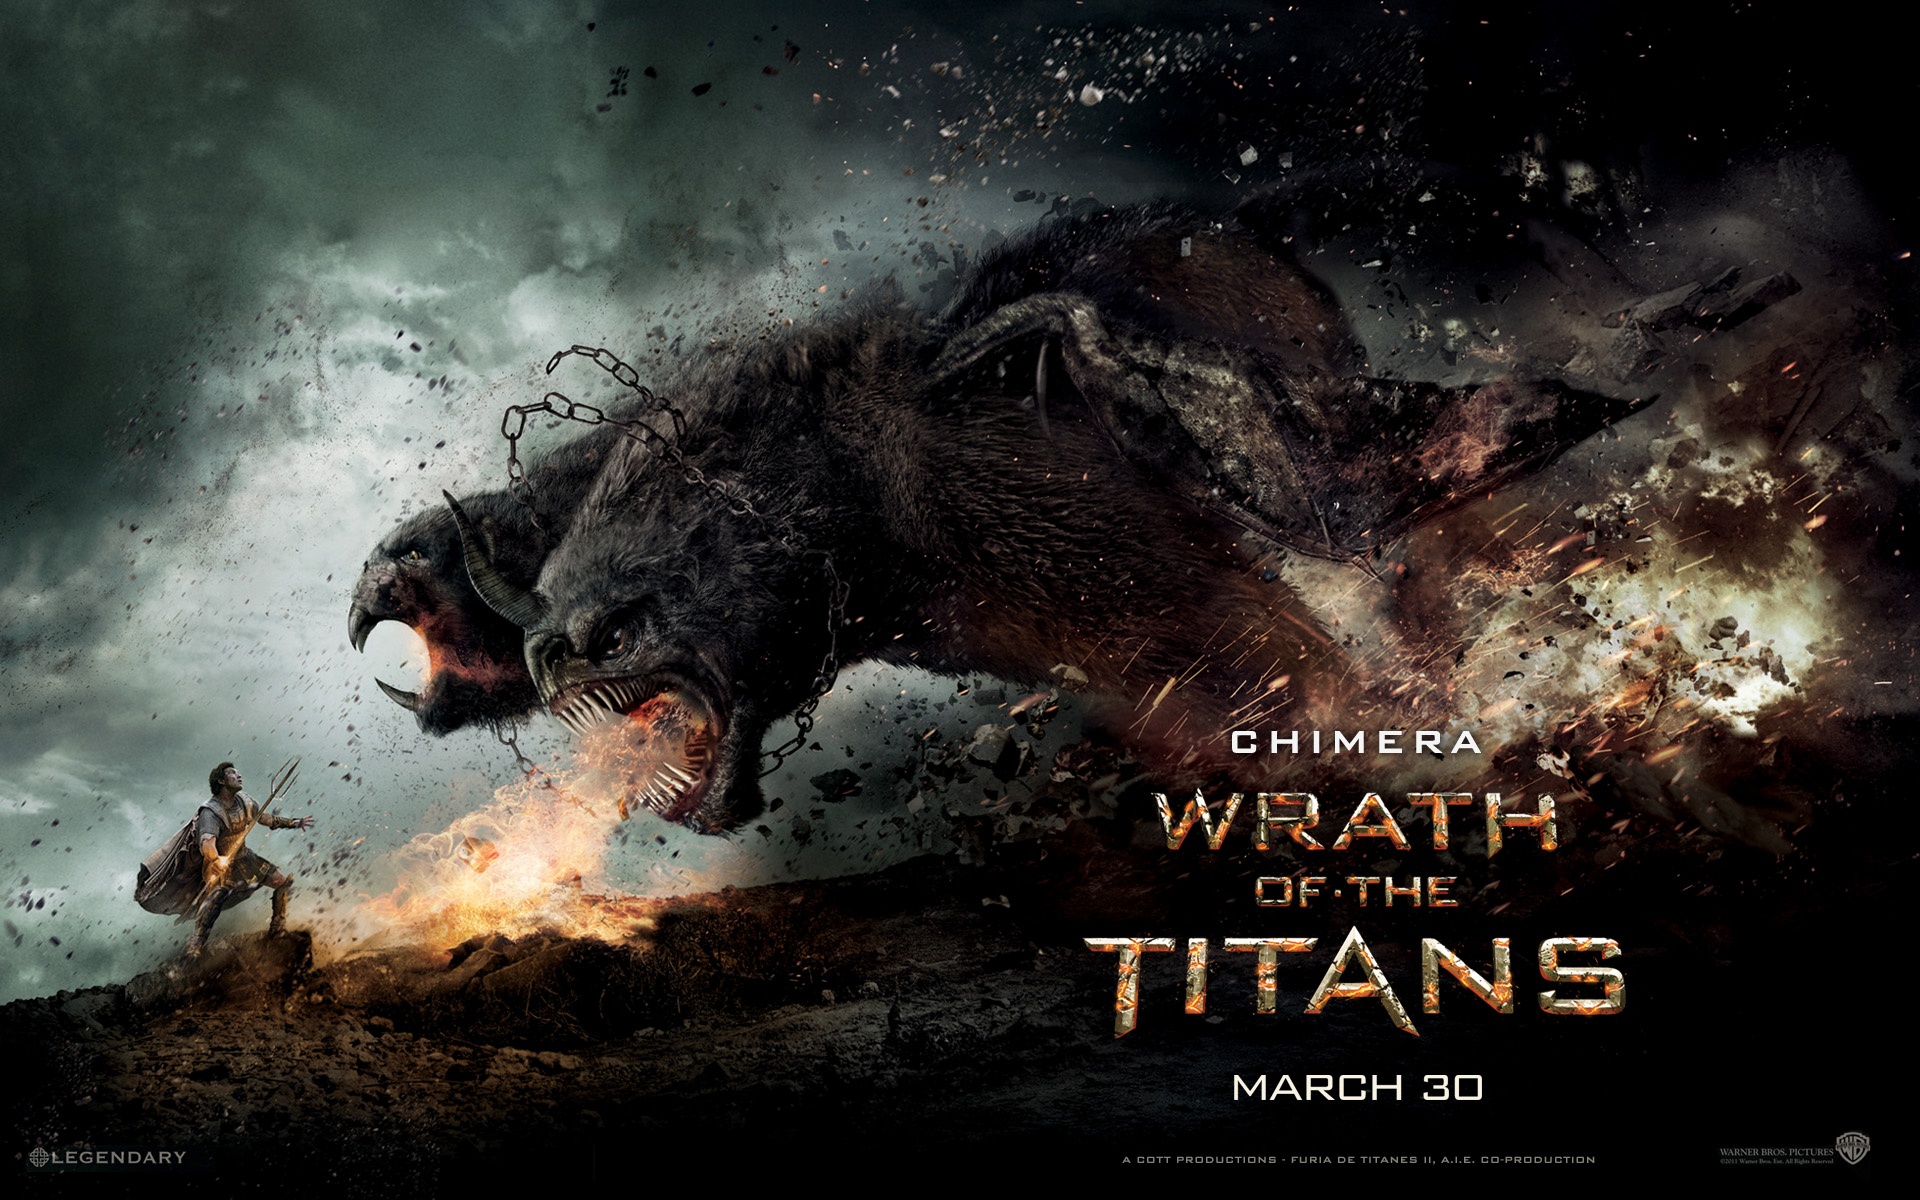 wratgh-of-the-titans-chimera